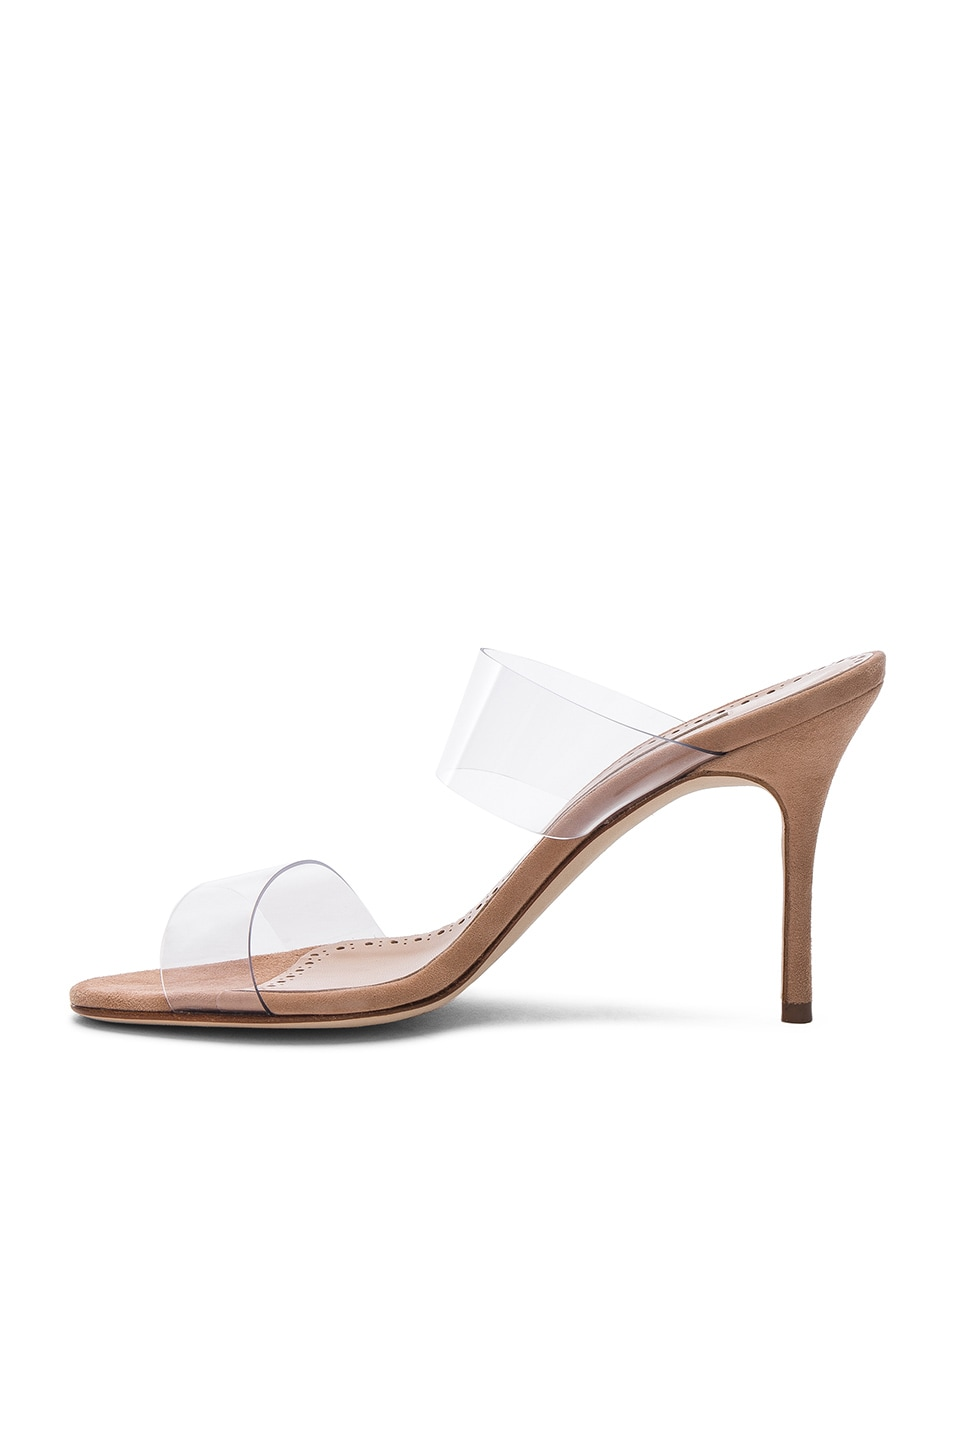 Image 5 of Manolo Blahnik PVC Scolto Sandals in Nude Suede